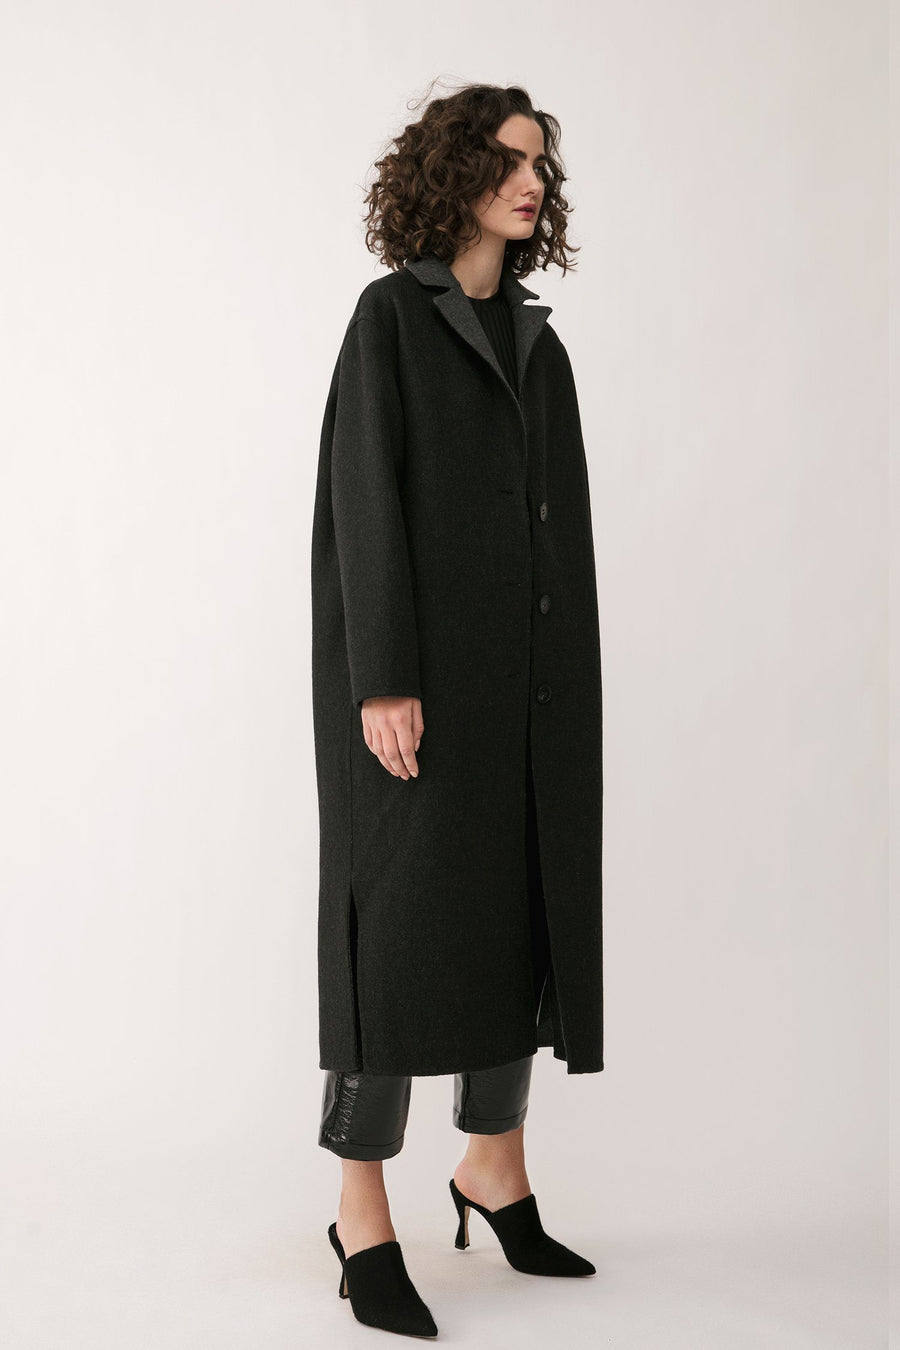 TERRA COAT - DARK GREY Coat Stylein